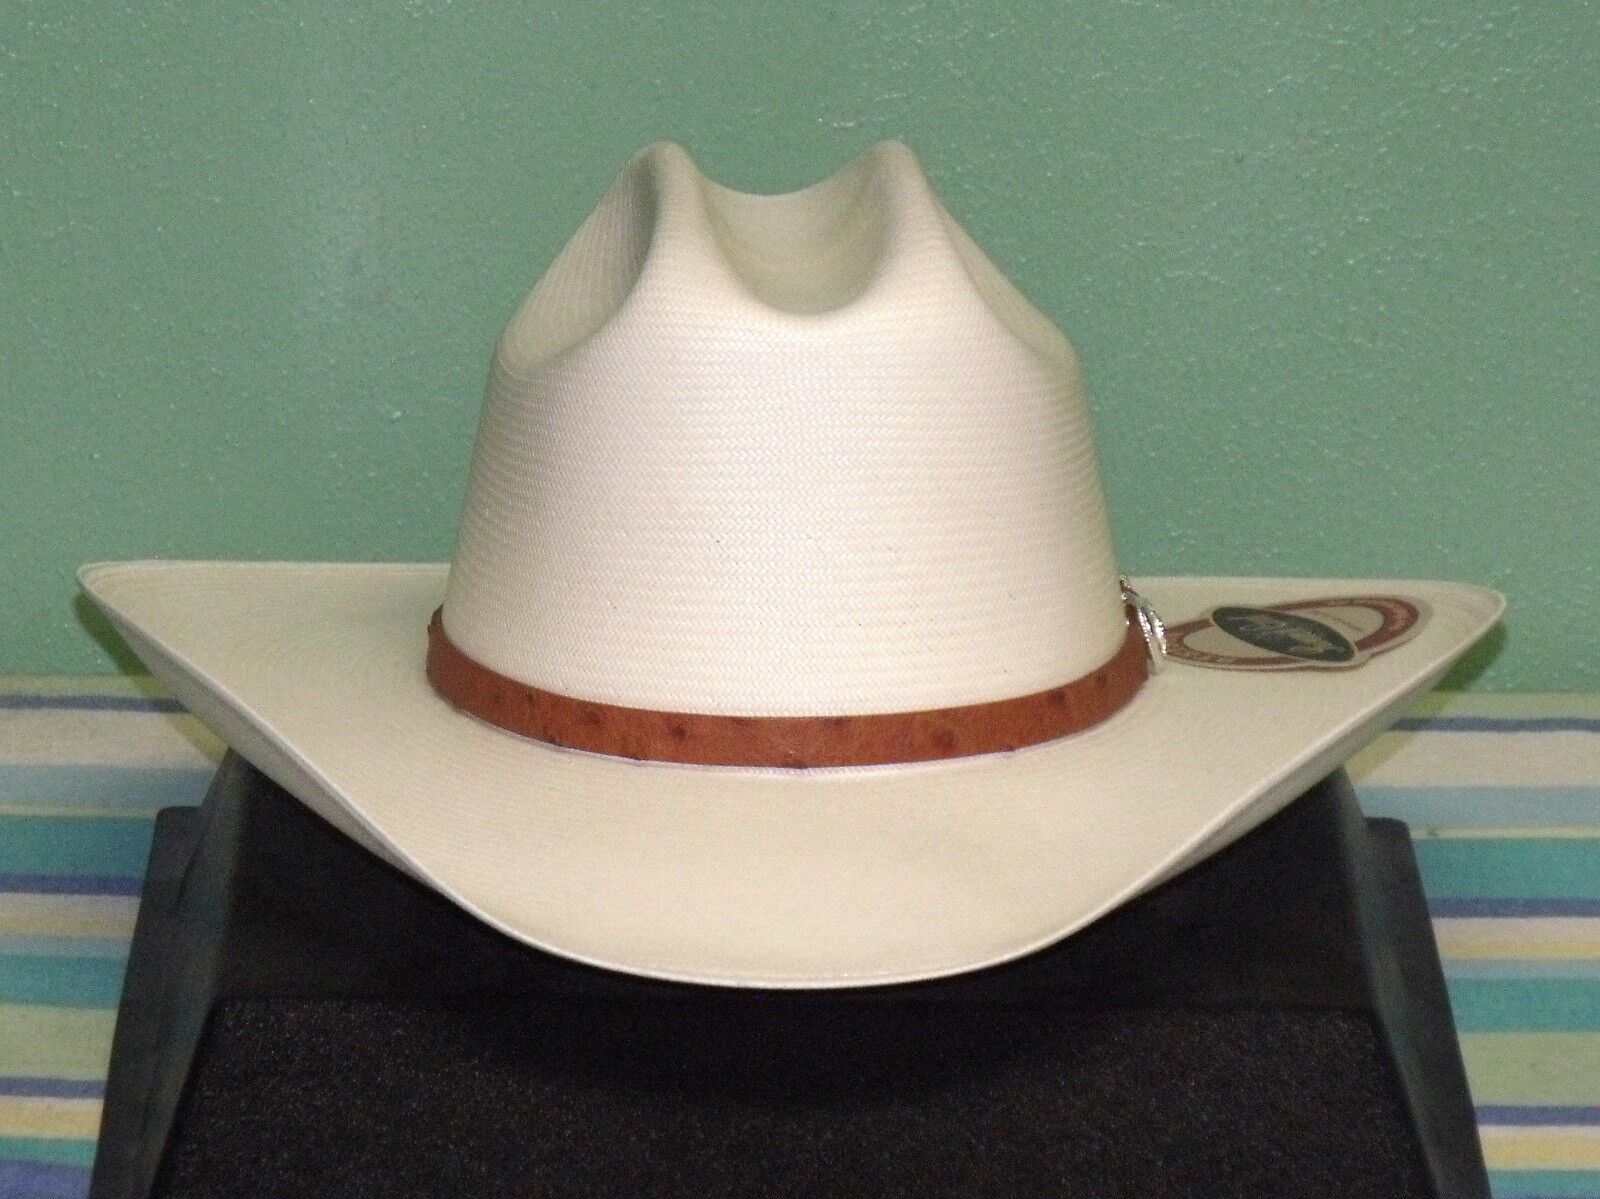 f8f9947d9b58b Stetson El Noble 500x Straw Cowboy Hat - SSELNBM2840 7 1 8 for sale ...